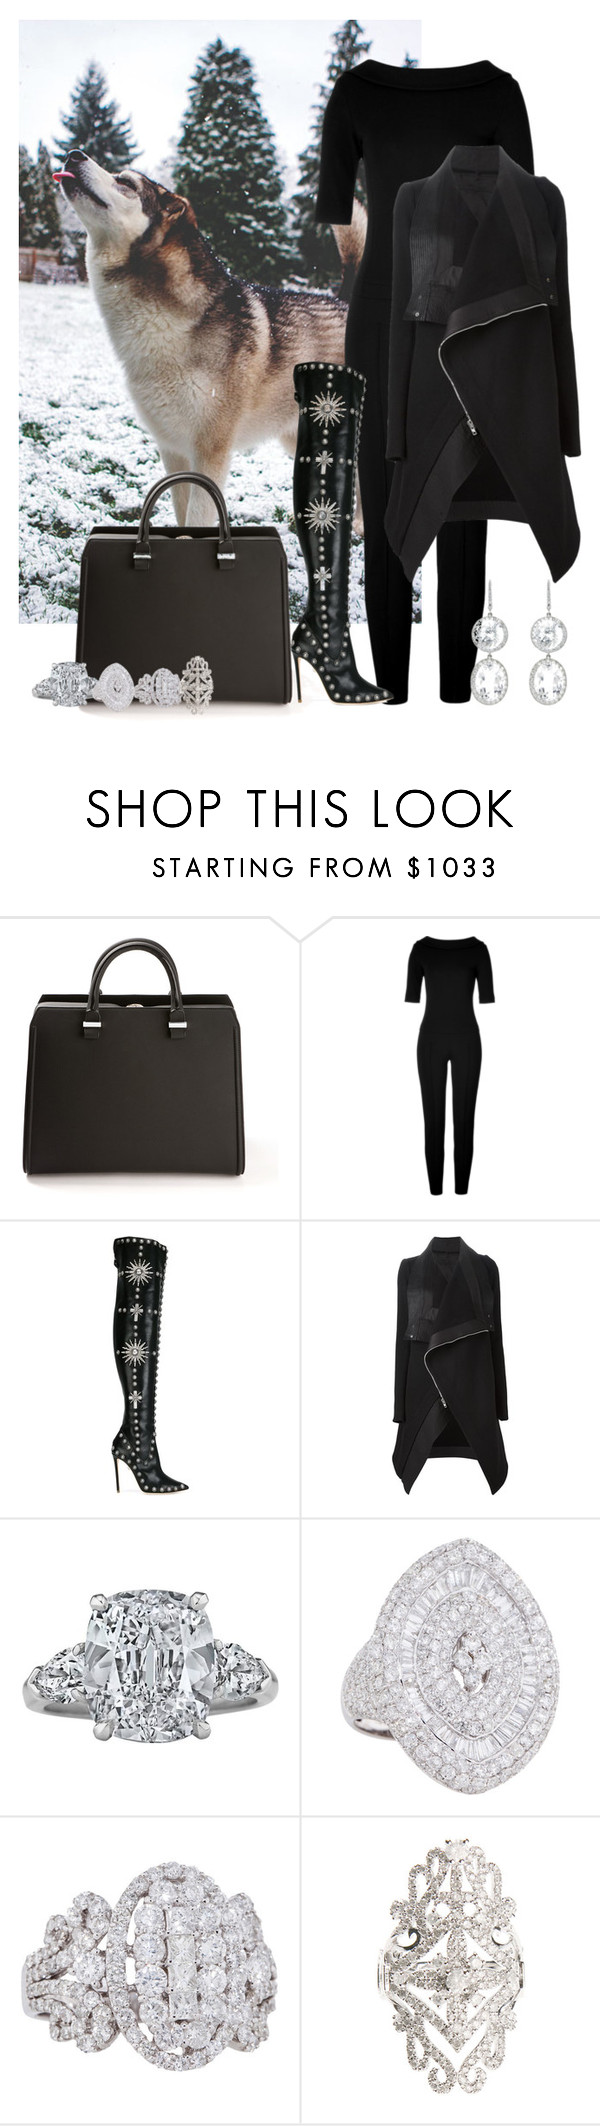 """Bez naslova #6069"" by unorthodox-1 ❤ liked on Polyvore featuring Victoria Beckham, Moschino, FAUSTO PUGLISI, Rick Owens, Graff, Elise Dray and Andrea Fohrman"